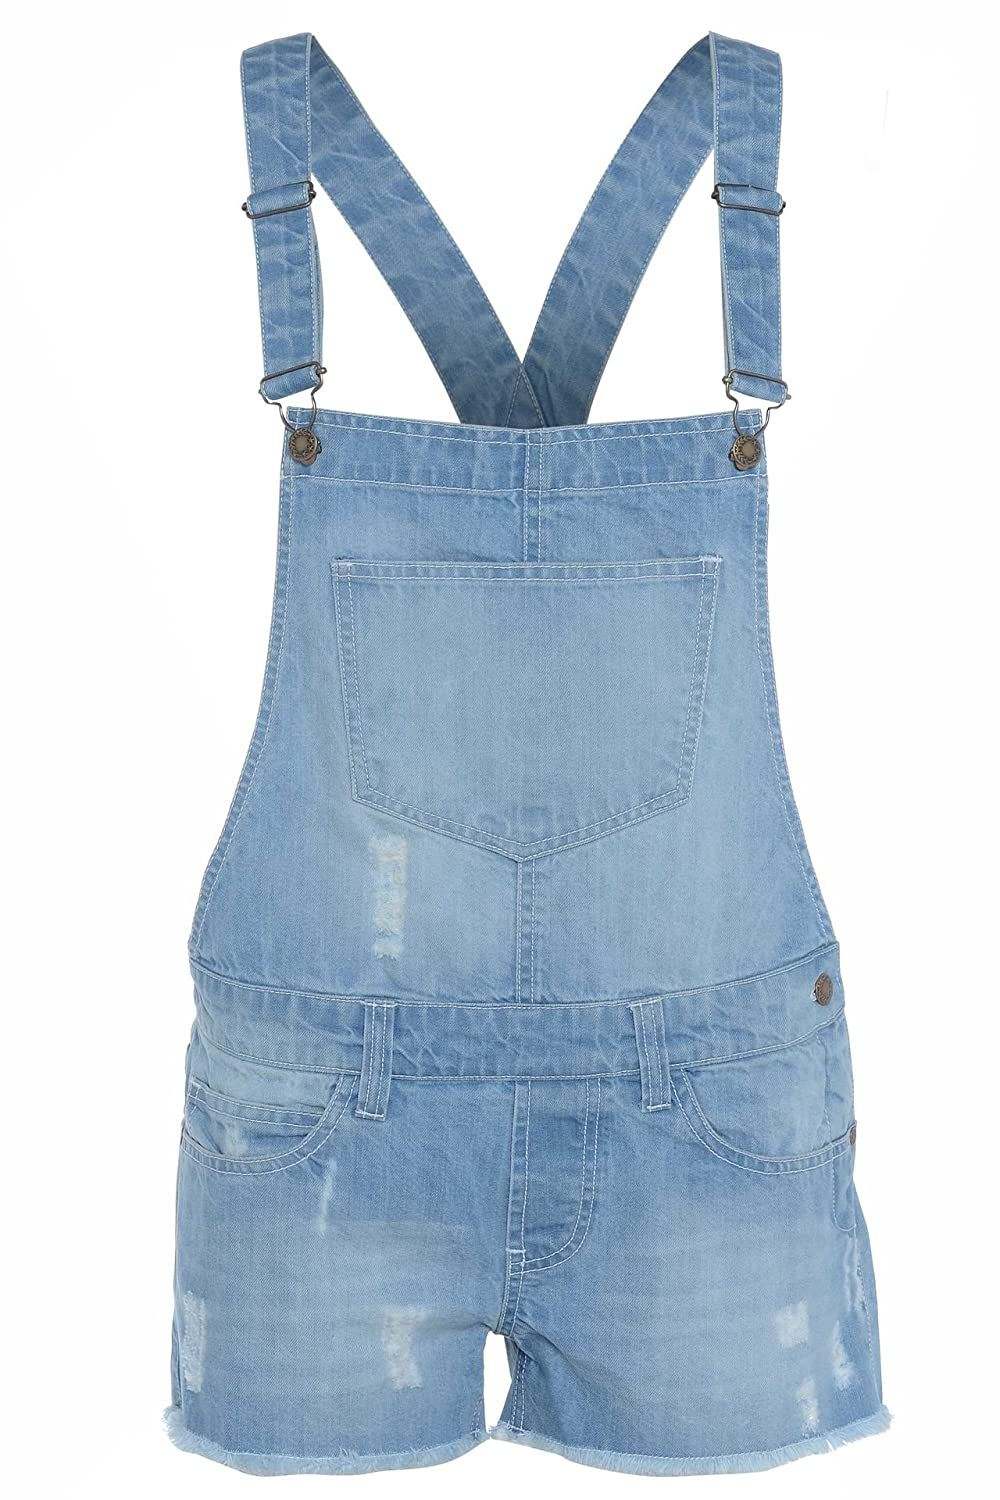 Top Fashion's Childrens Unisex Girls Light Wash Denim Short Boys Dungaree Jumpsuit Age 5-13